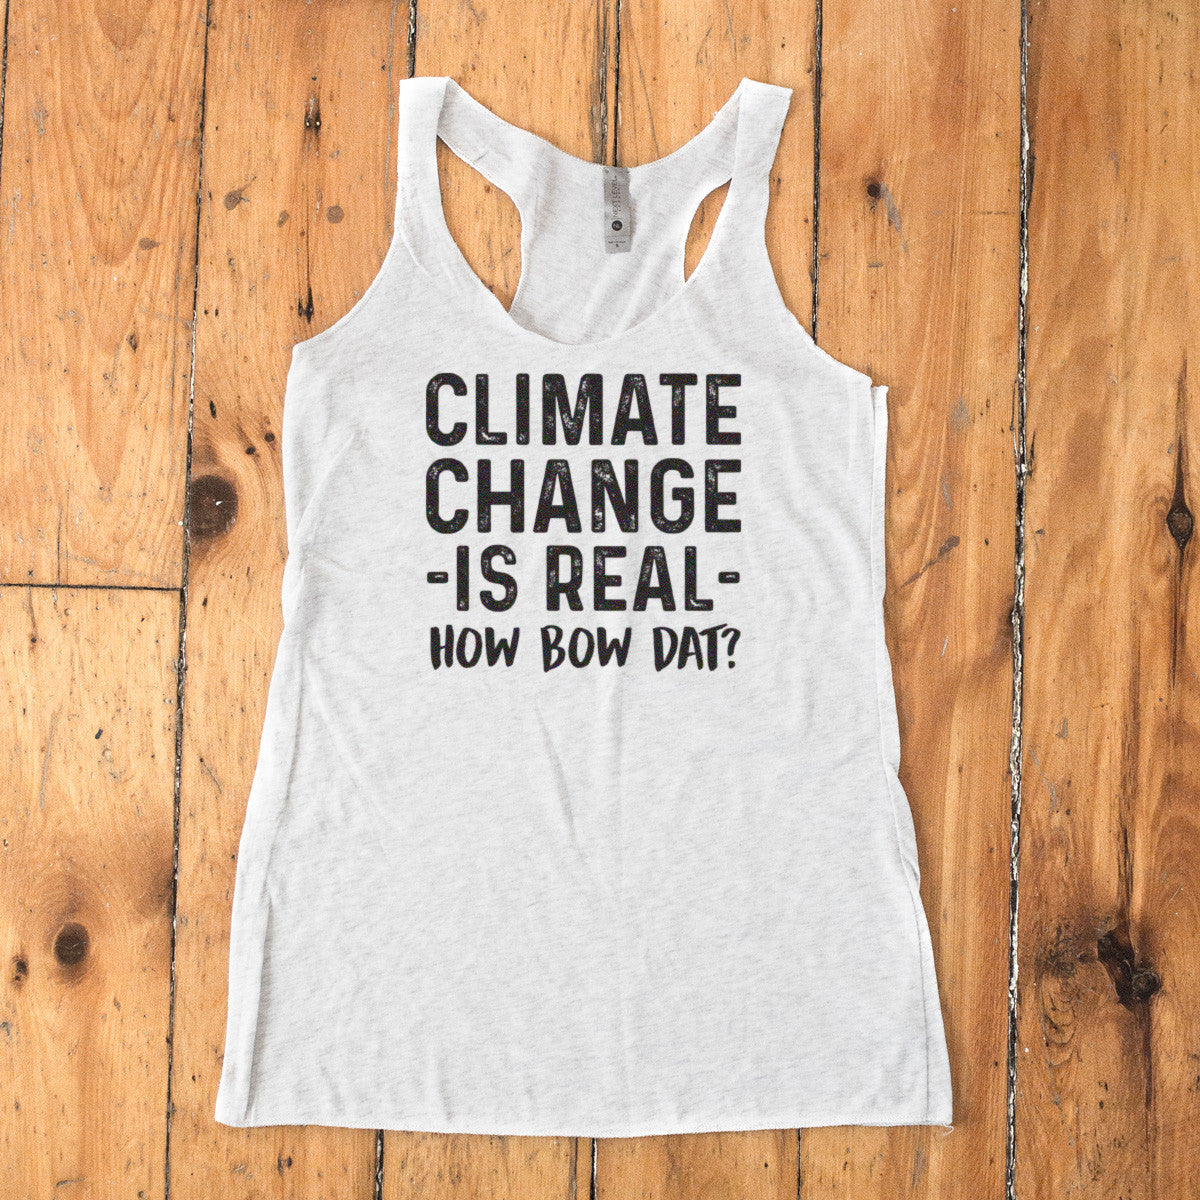 Climate Change is Real - How Bow Dat? Racerback Tank